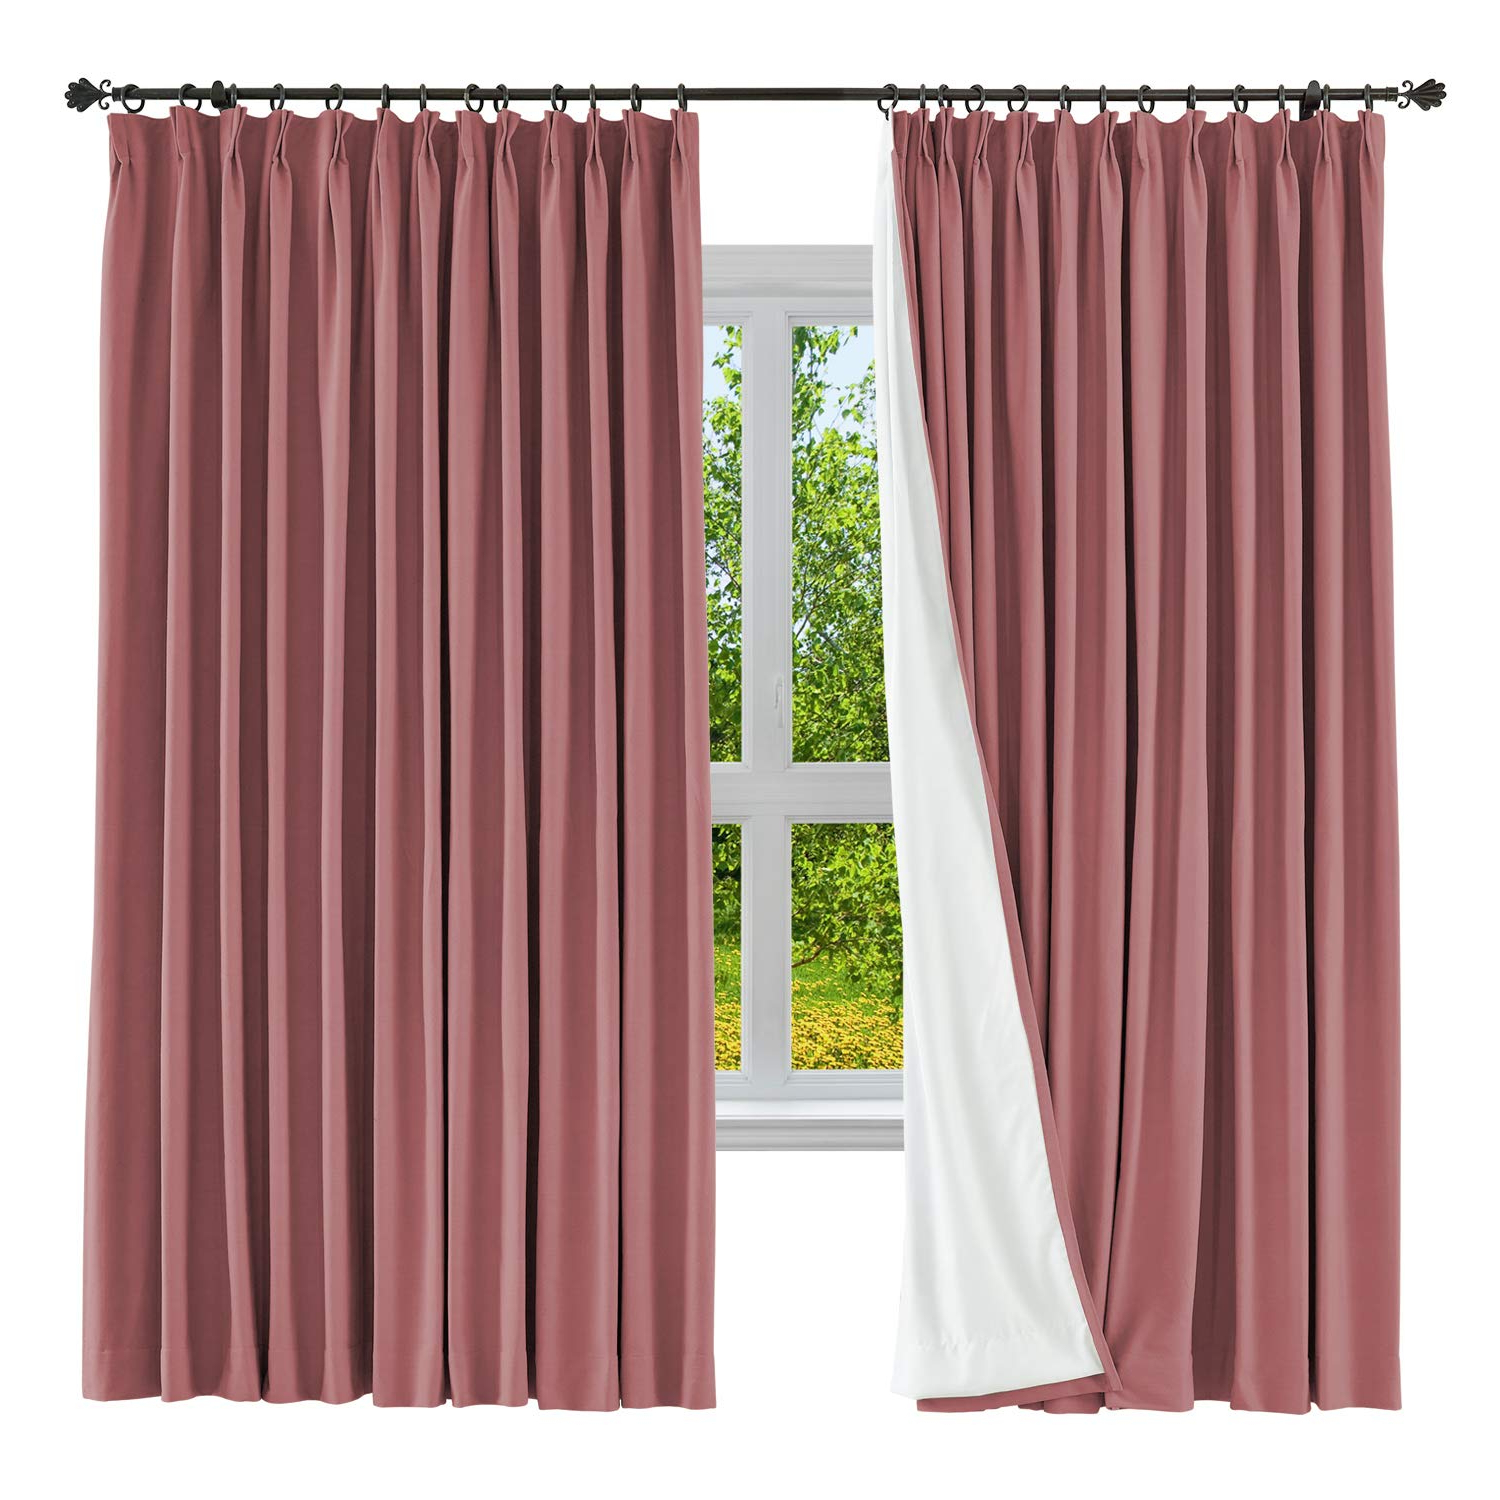 """Cololeaf Blackout Curtain Linen Cotton Drapery Blackout Solid Pinch Pleated Curtain For Bedroom Living Room Family Room, 84"""" W X 84"""" L (red, 1 Panel) Intended For 2020 Solid Cotton Pleated Curtains (View 12 of 20)"""